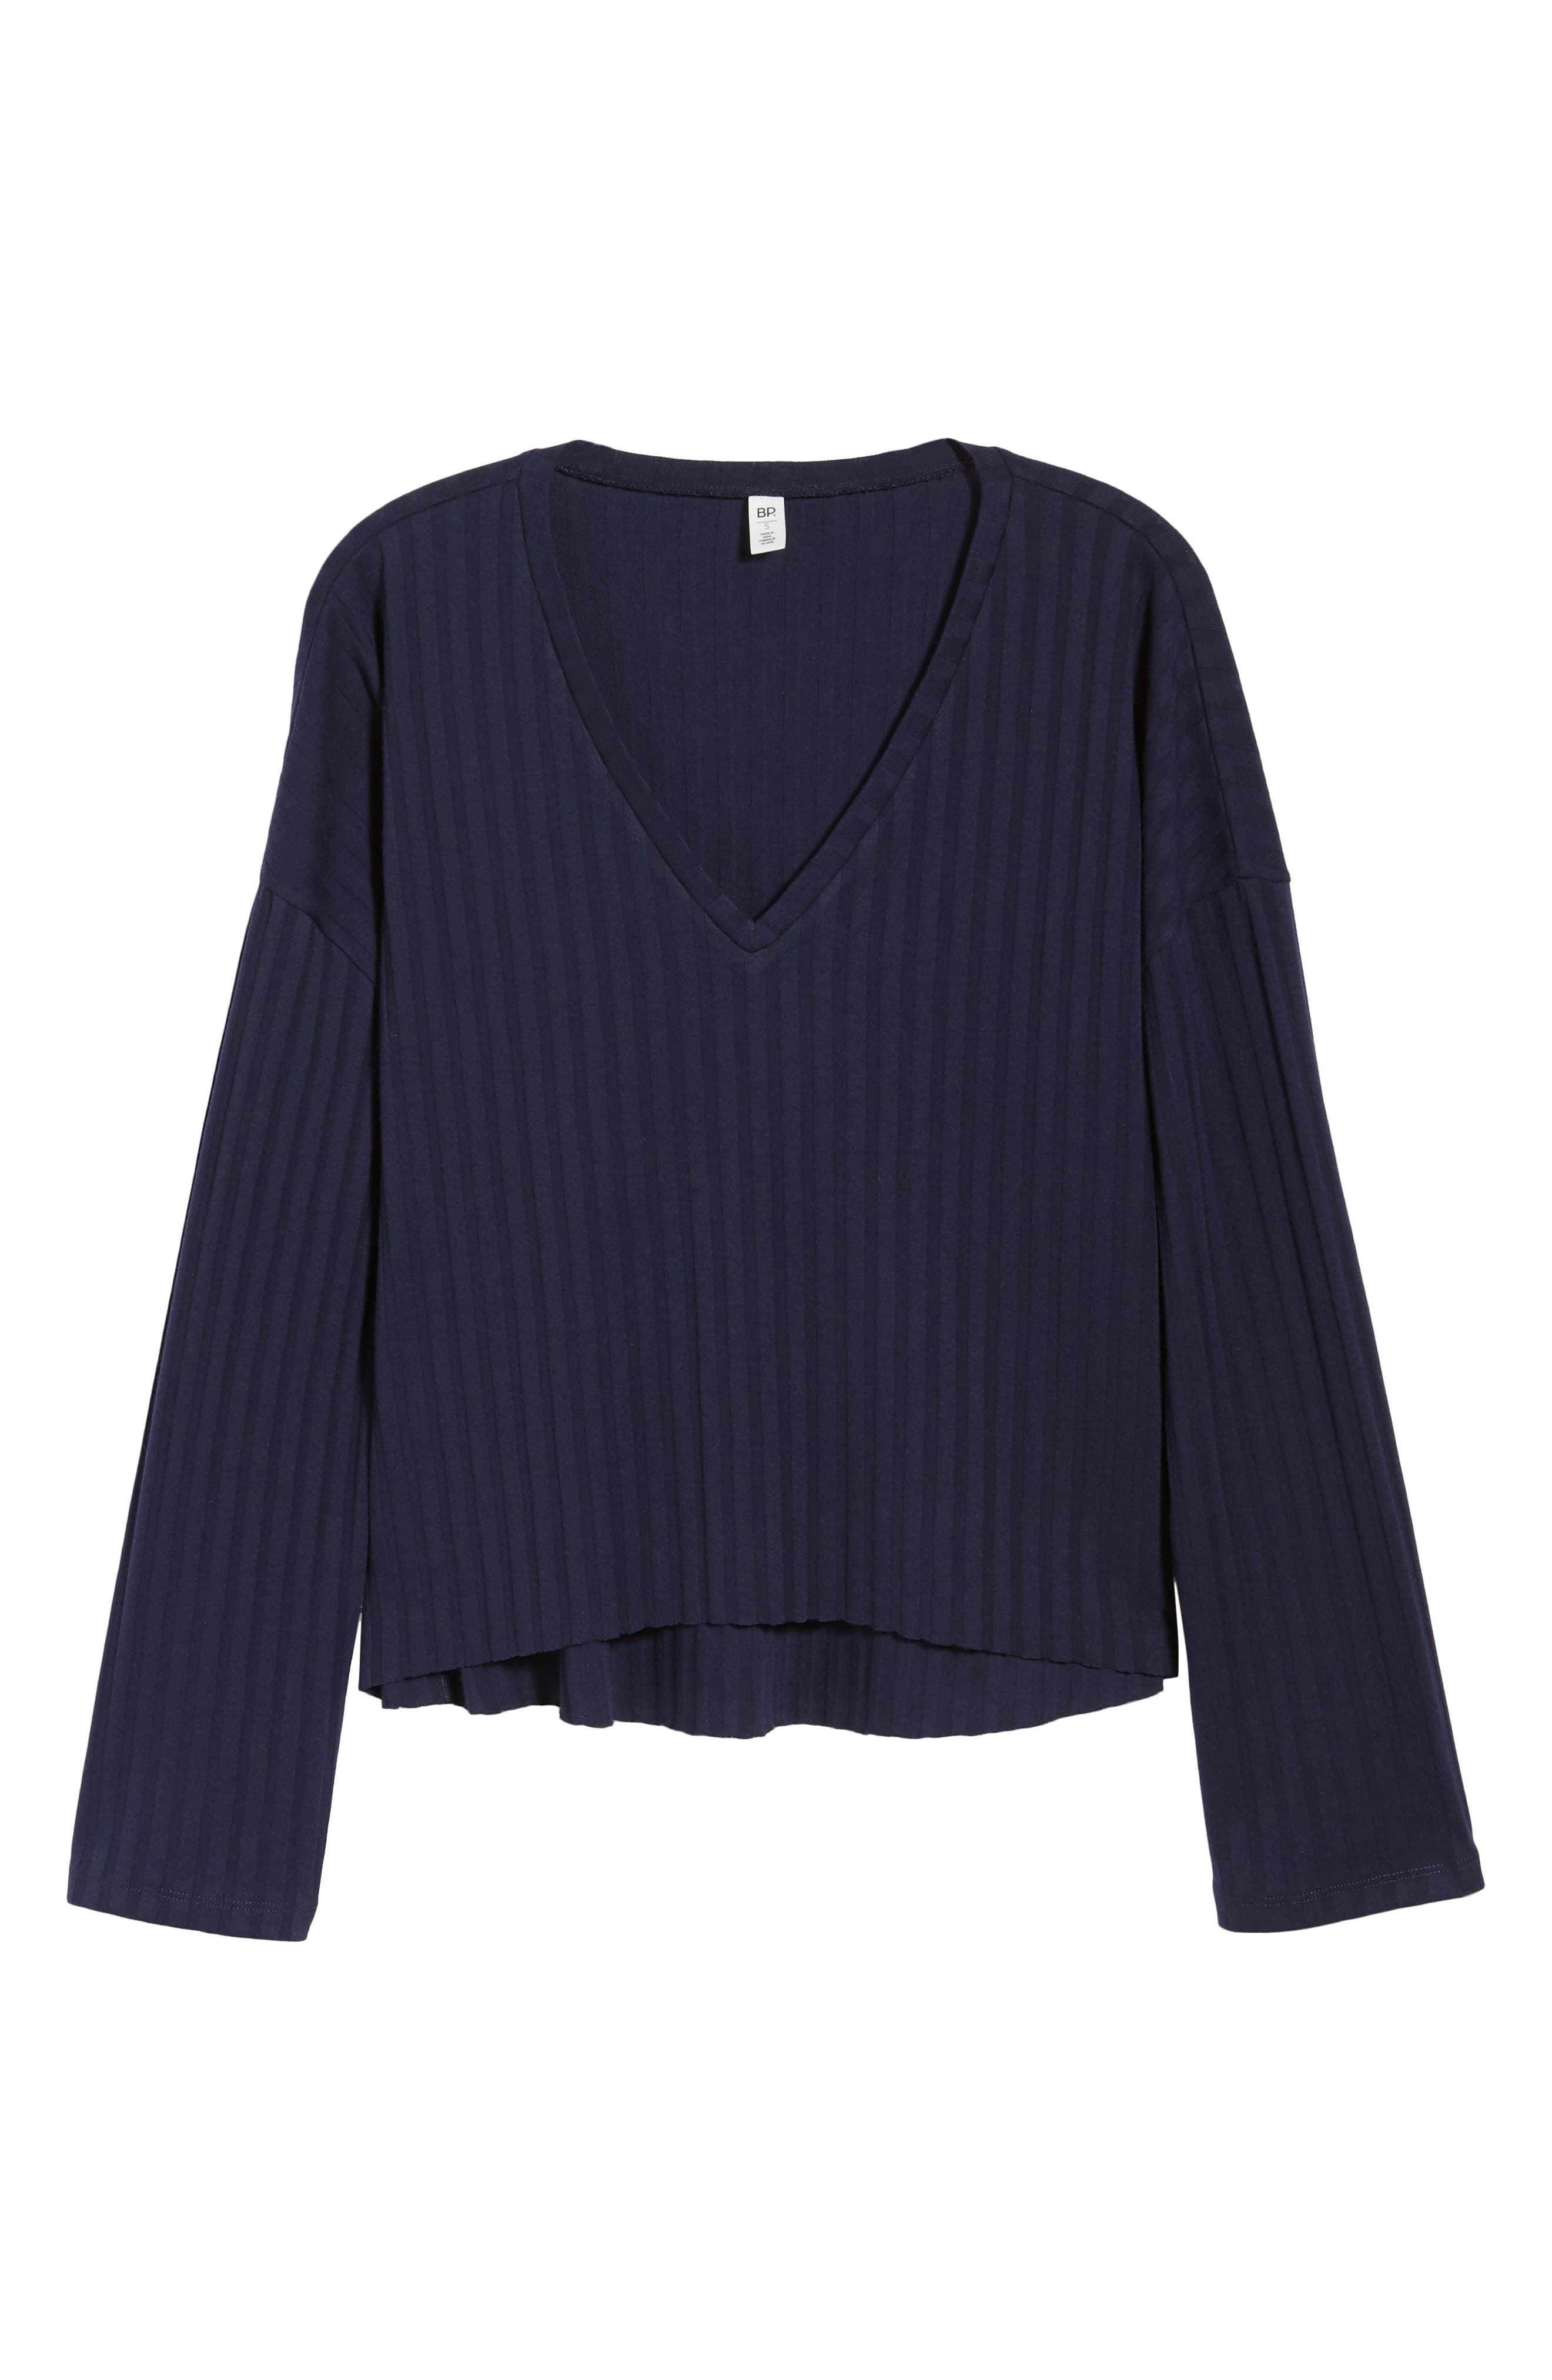 Wide Rib Crop Sweater,                             Alternate thumbnail 6, color,                             NAVY MARITIME